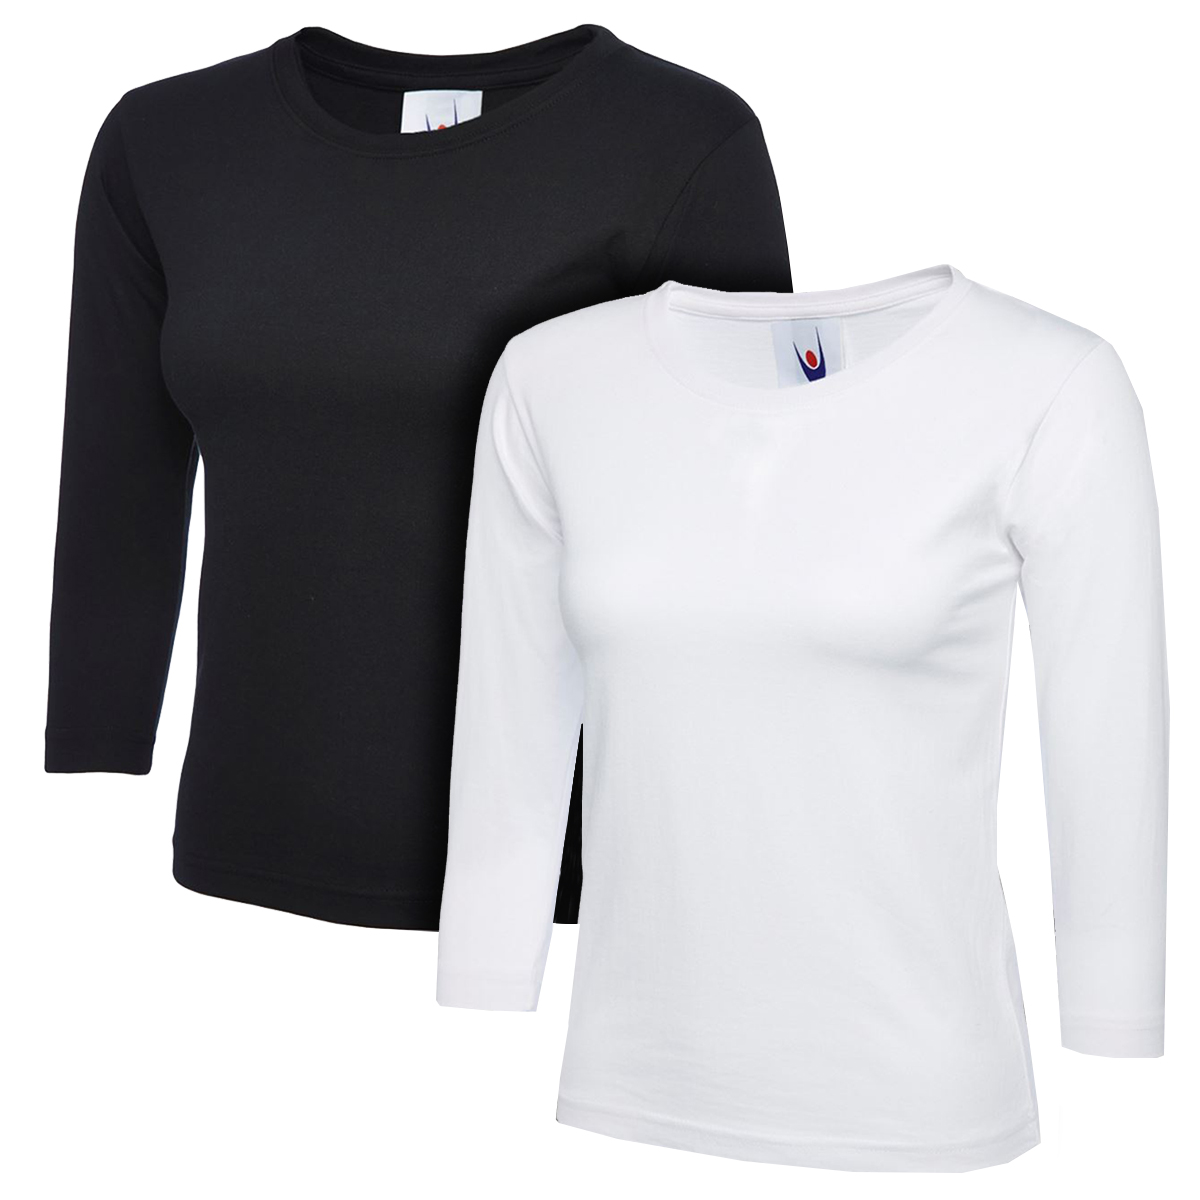 721c3bcdd7c9 Ladies Womens 3 4 Sleeve T-Shirt Top Plain Tee Casual Formal 2 Pack  Multibuy New